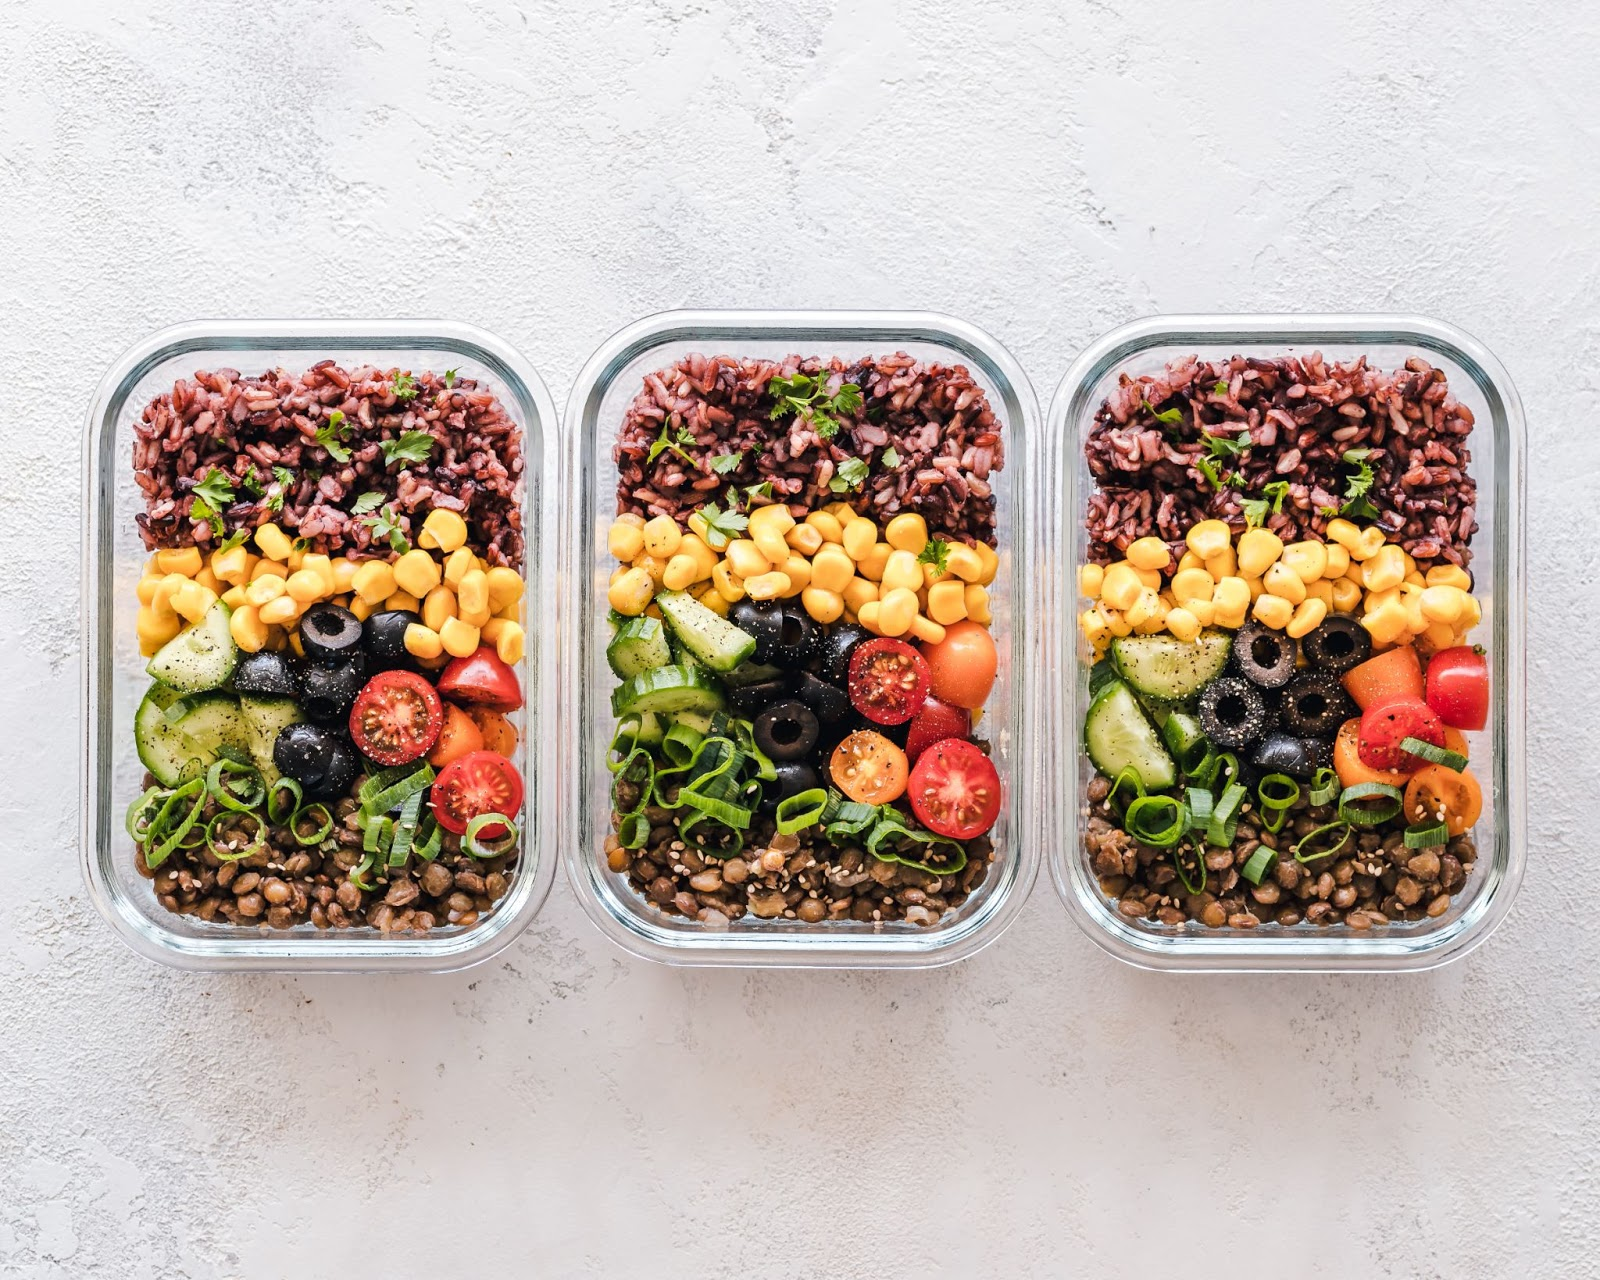 Meal Plan Delivery Services